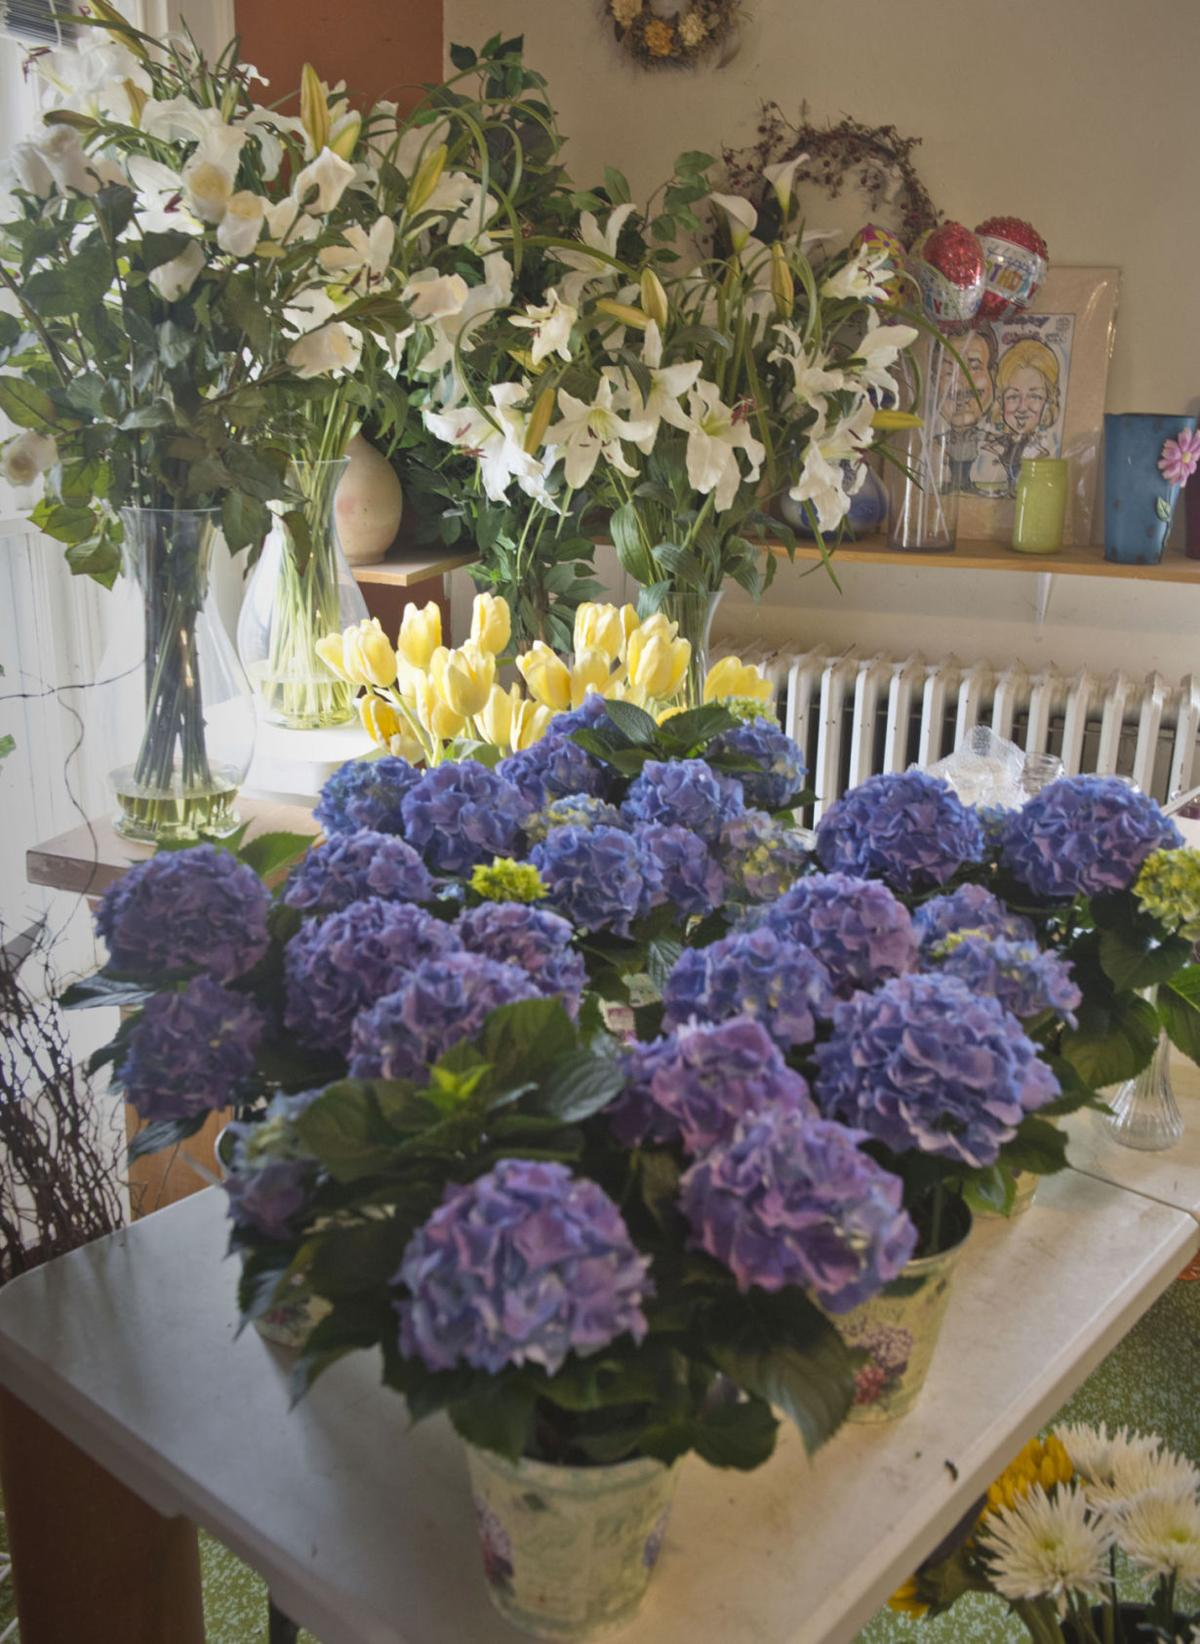 Florists deliver spring cheer in midst of crisis